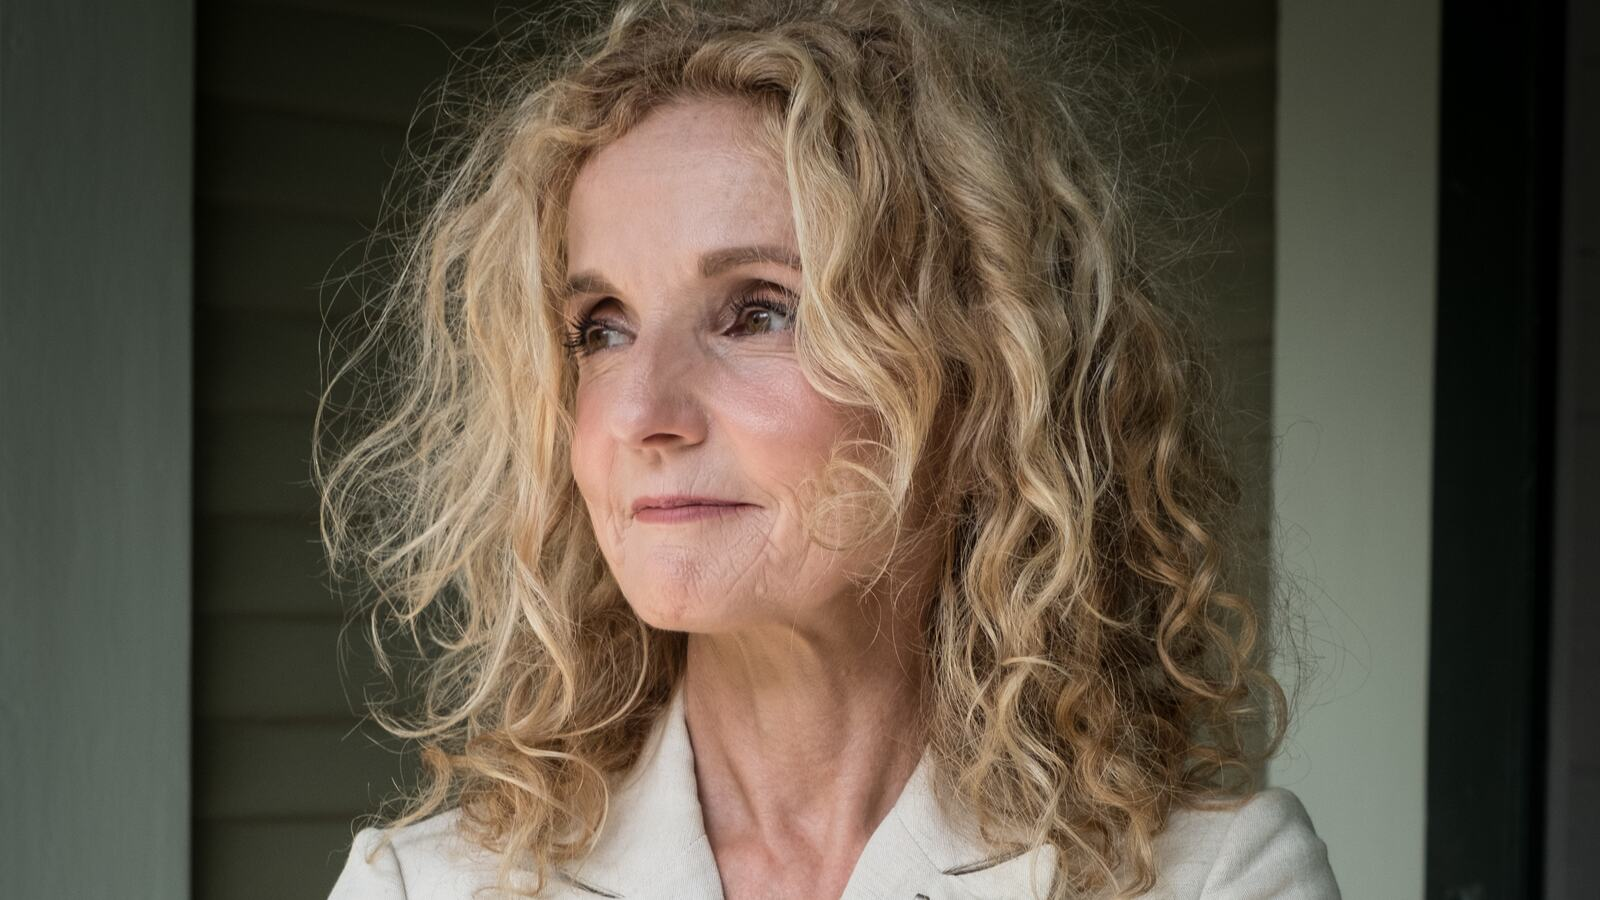 Patty Griffin, singer-songwriter